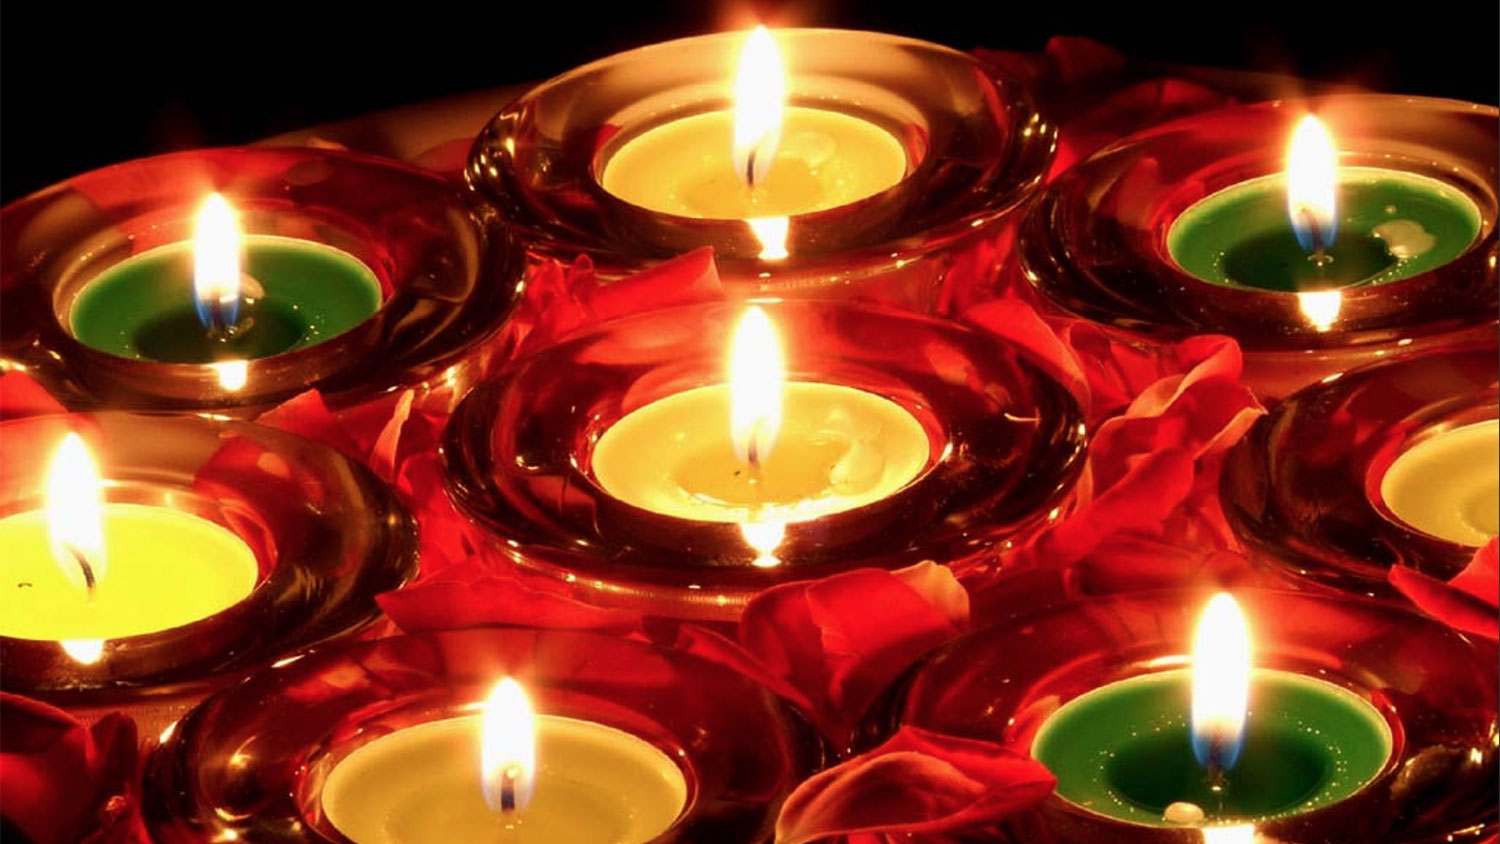 Festive Diwali candles